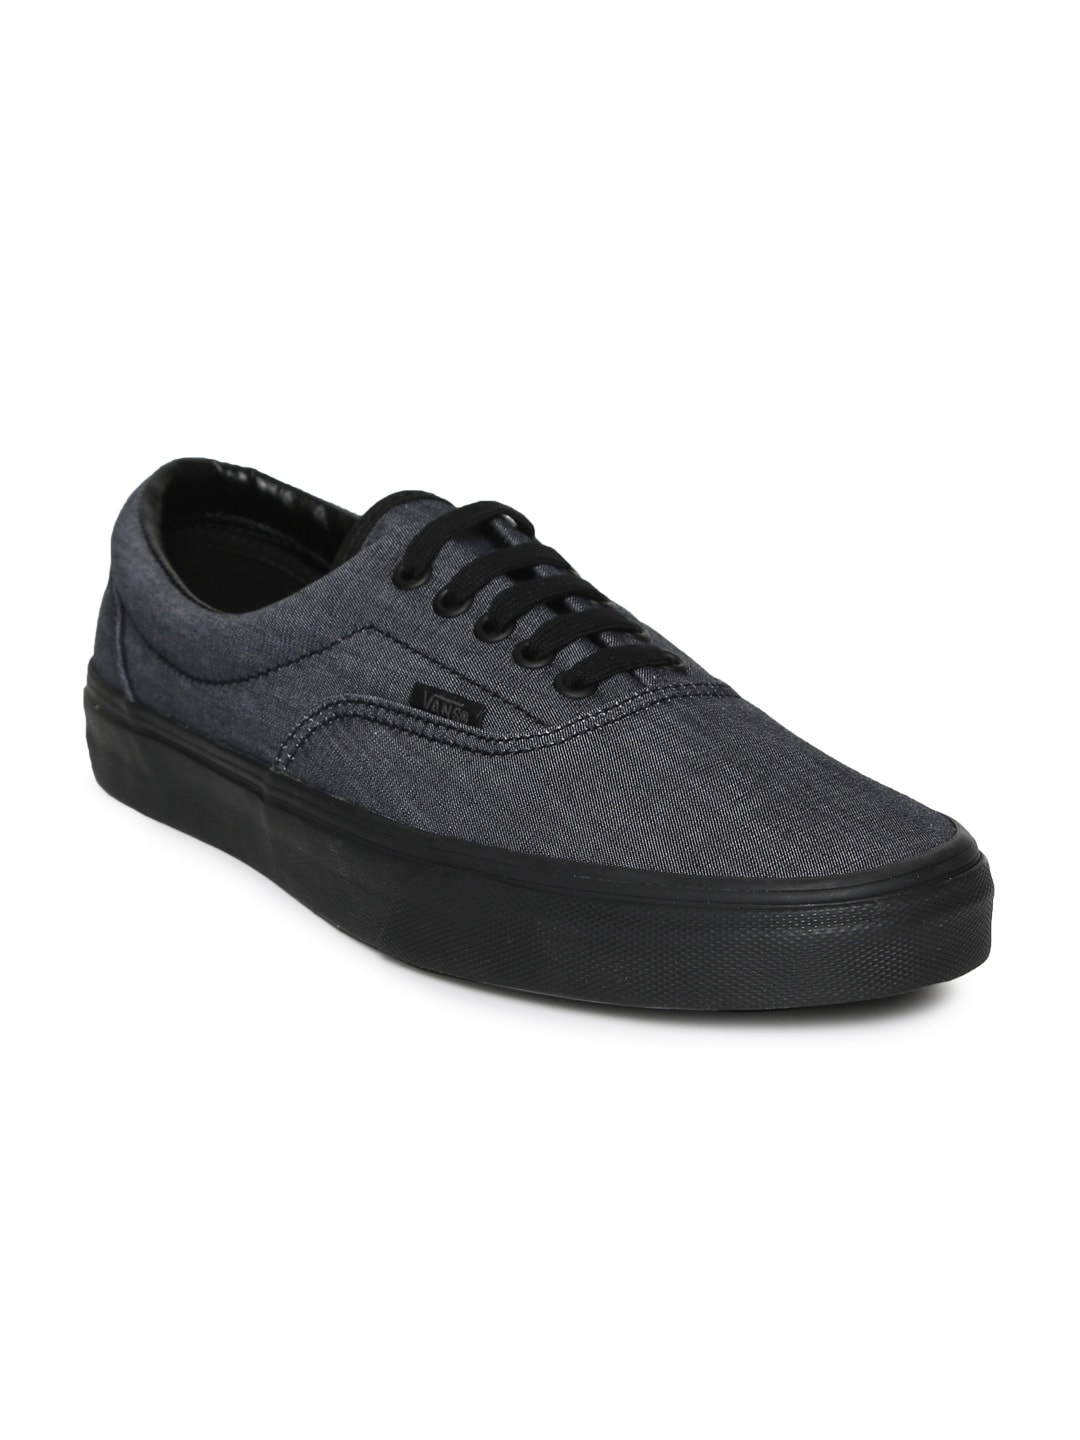 08939f853d11 Vans Casual Shoes - Buy Vans Casual Shoes Online in India